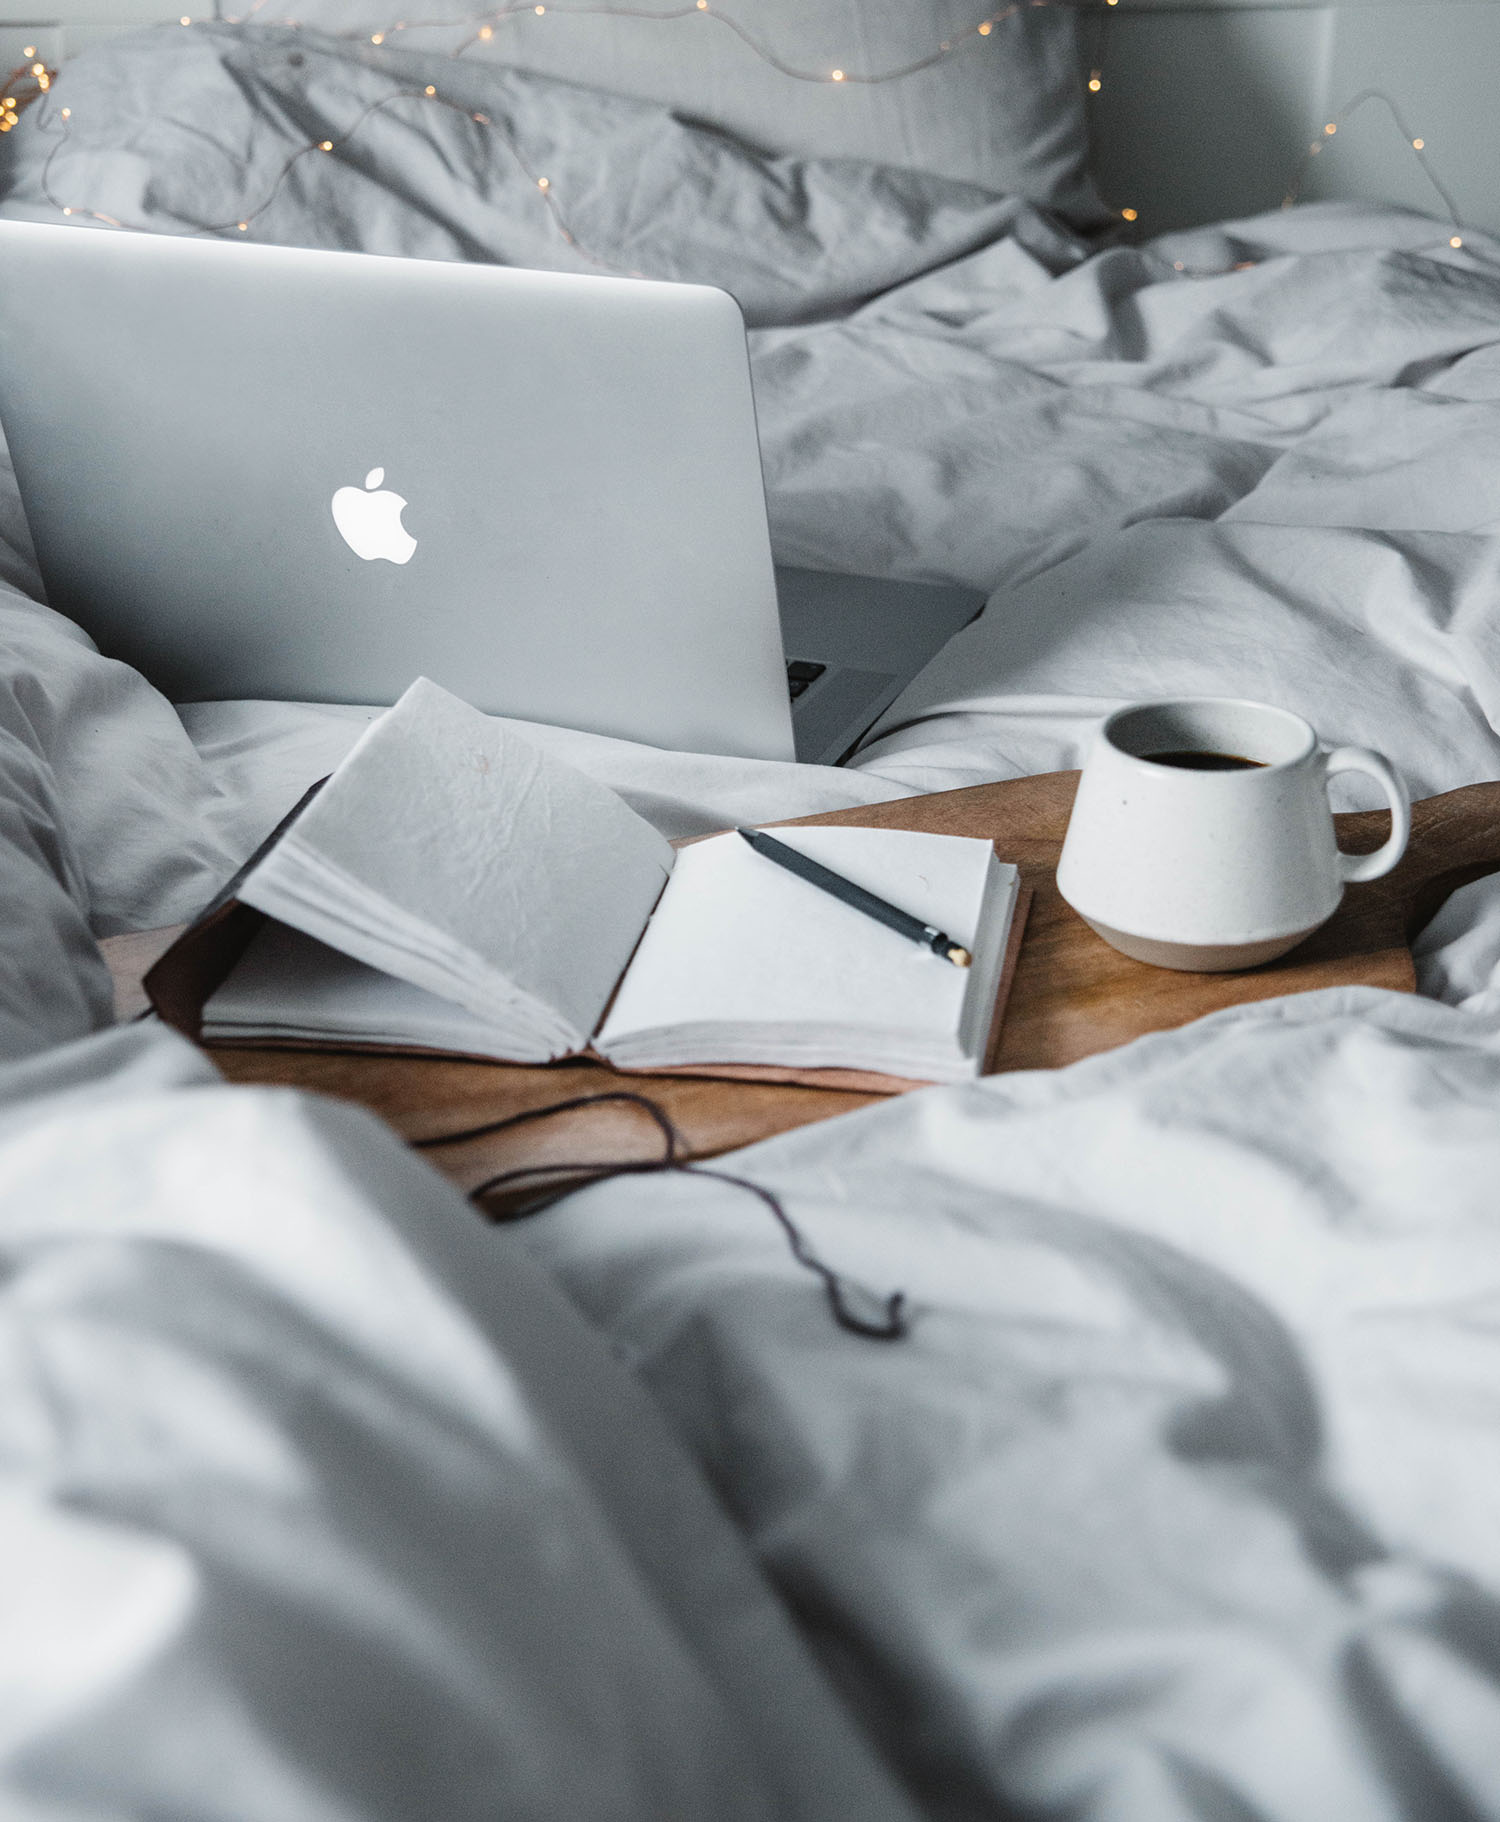 Cutting board, coffee cup and Macbook in a bed with grey sheets